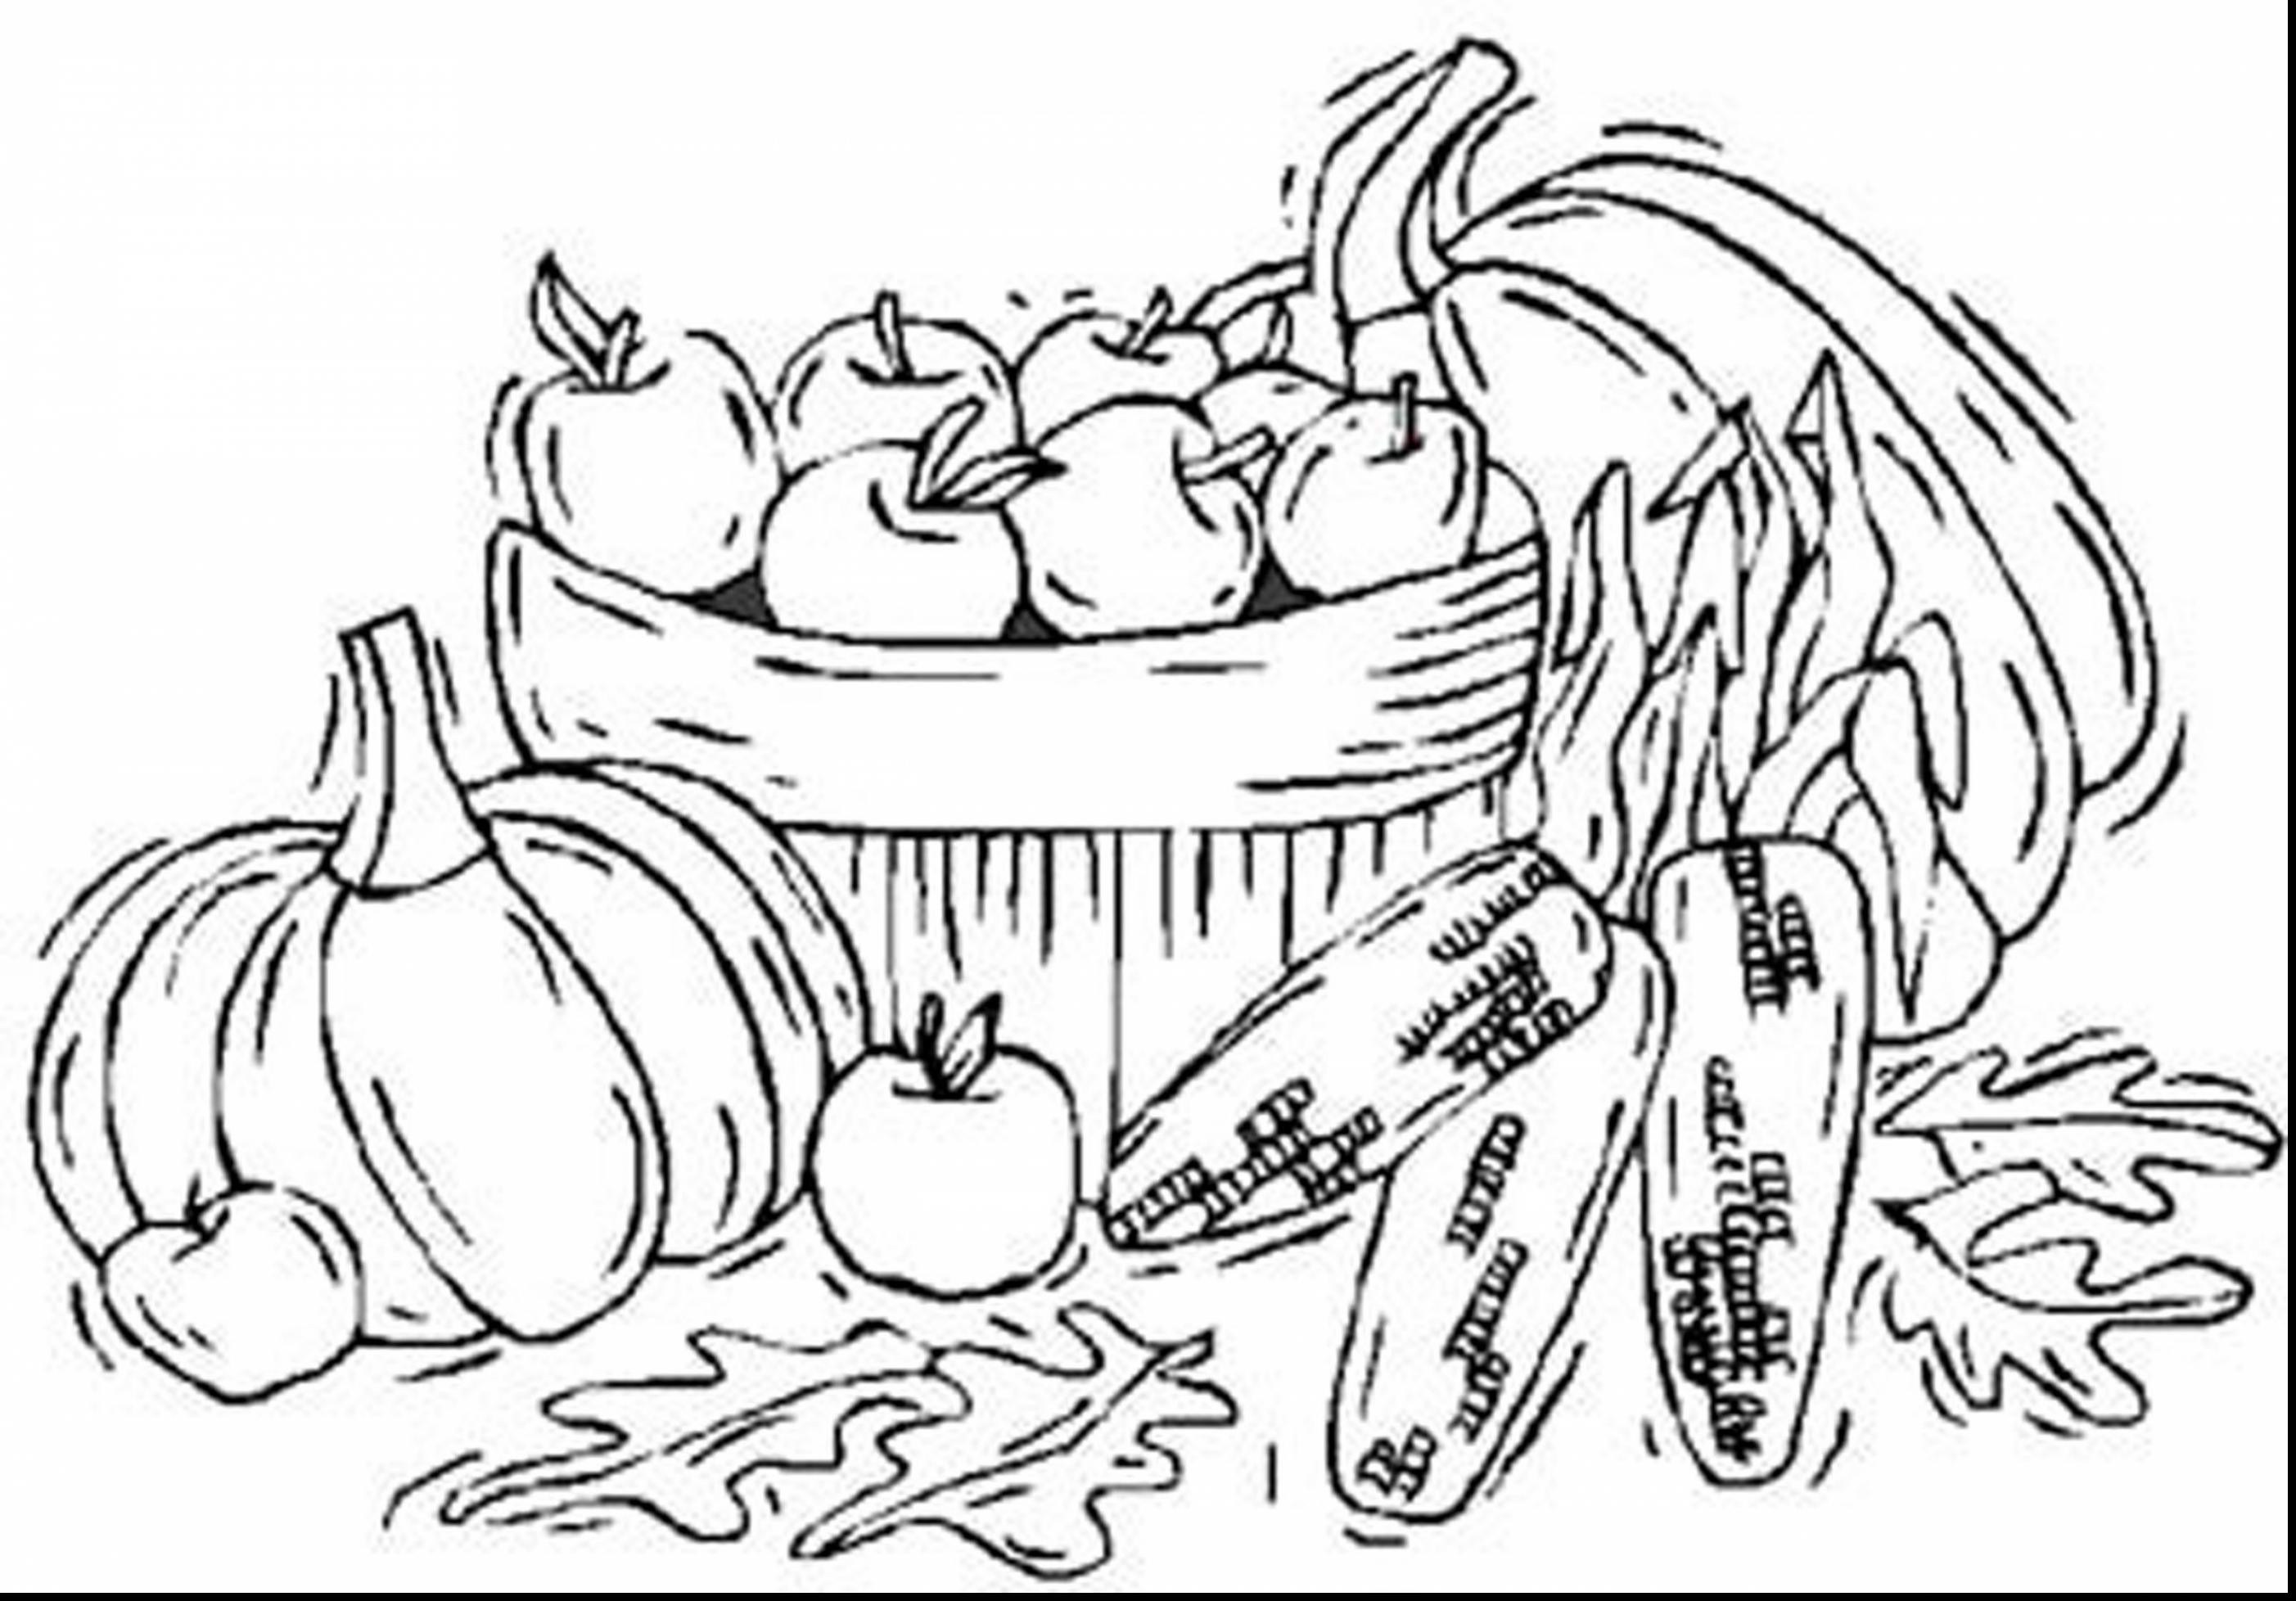 smokey the bear coloring pages a coloring book for smokey39s friends crayon palace the pages smokey coloring bear